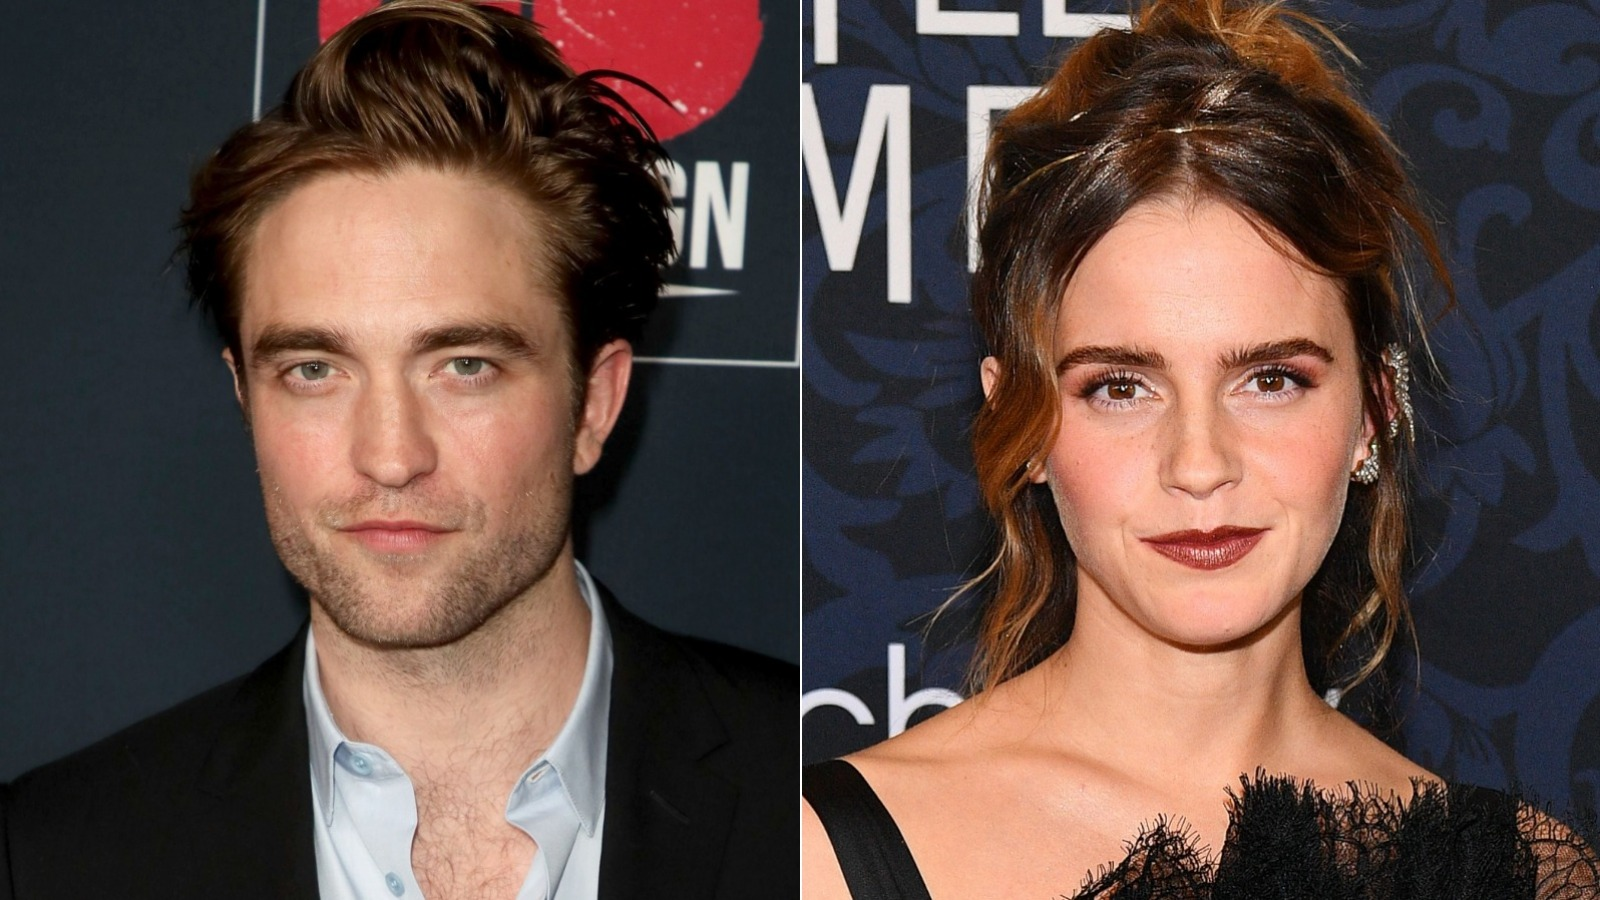 Emma watson and robert pattinson dating creative dating headlines